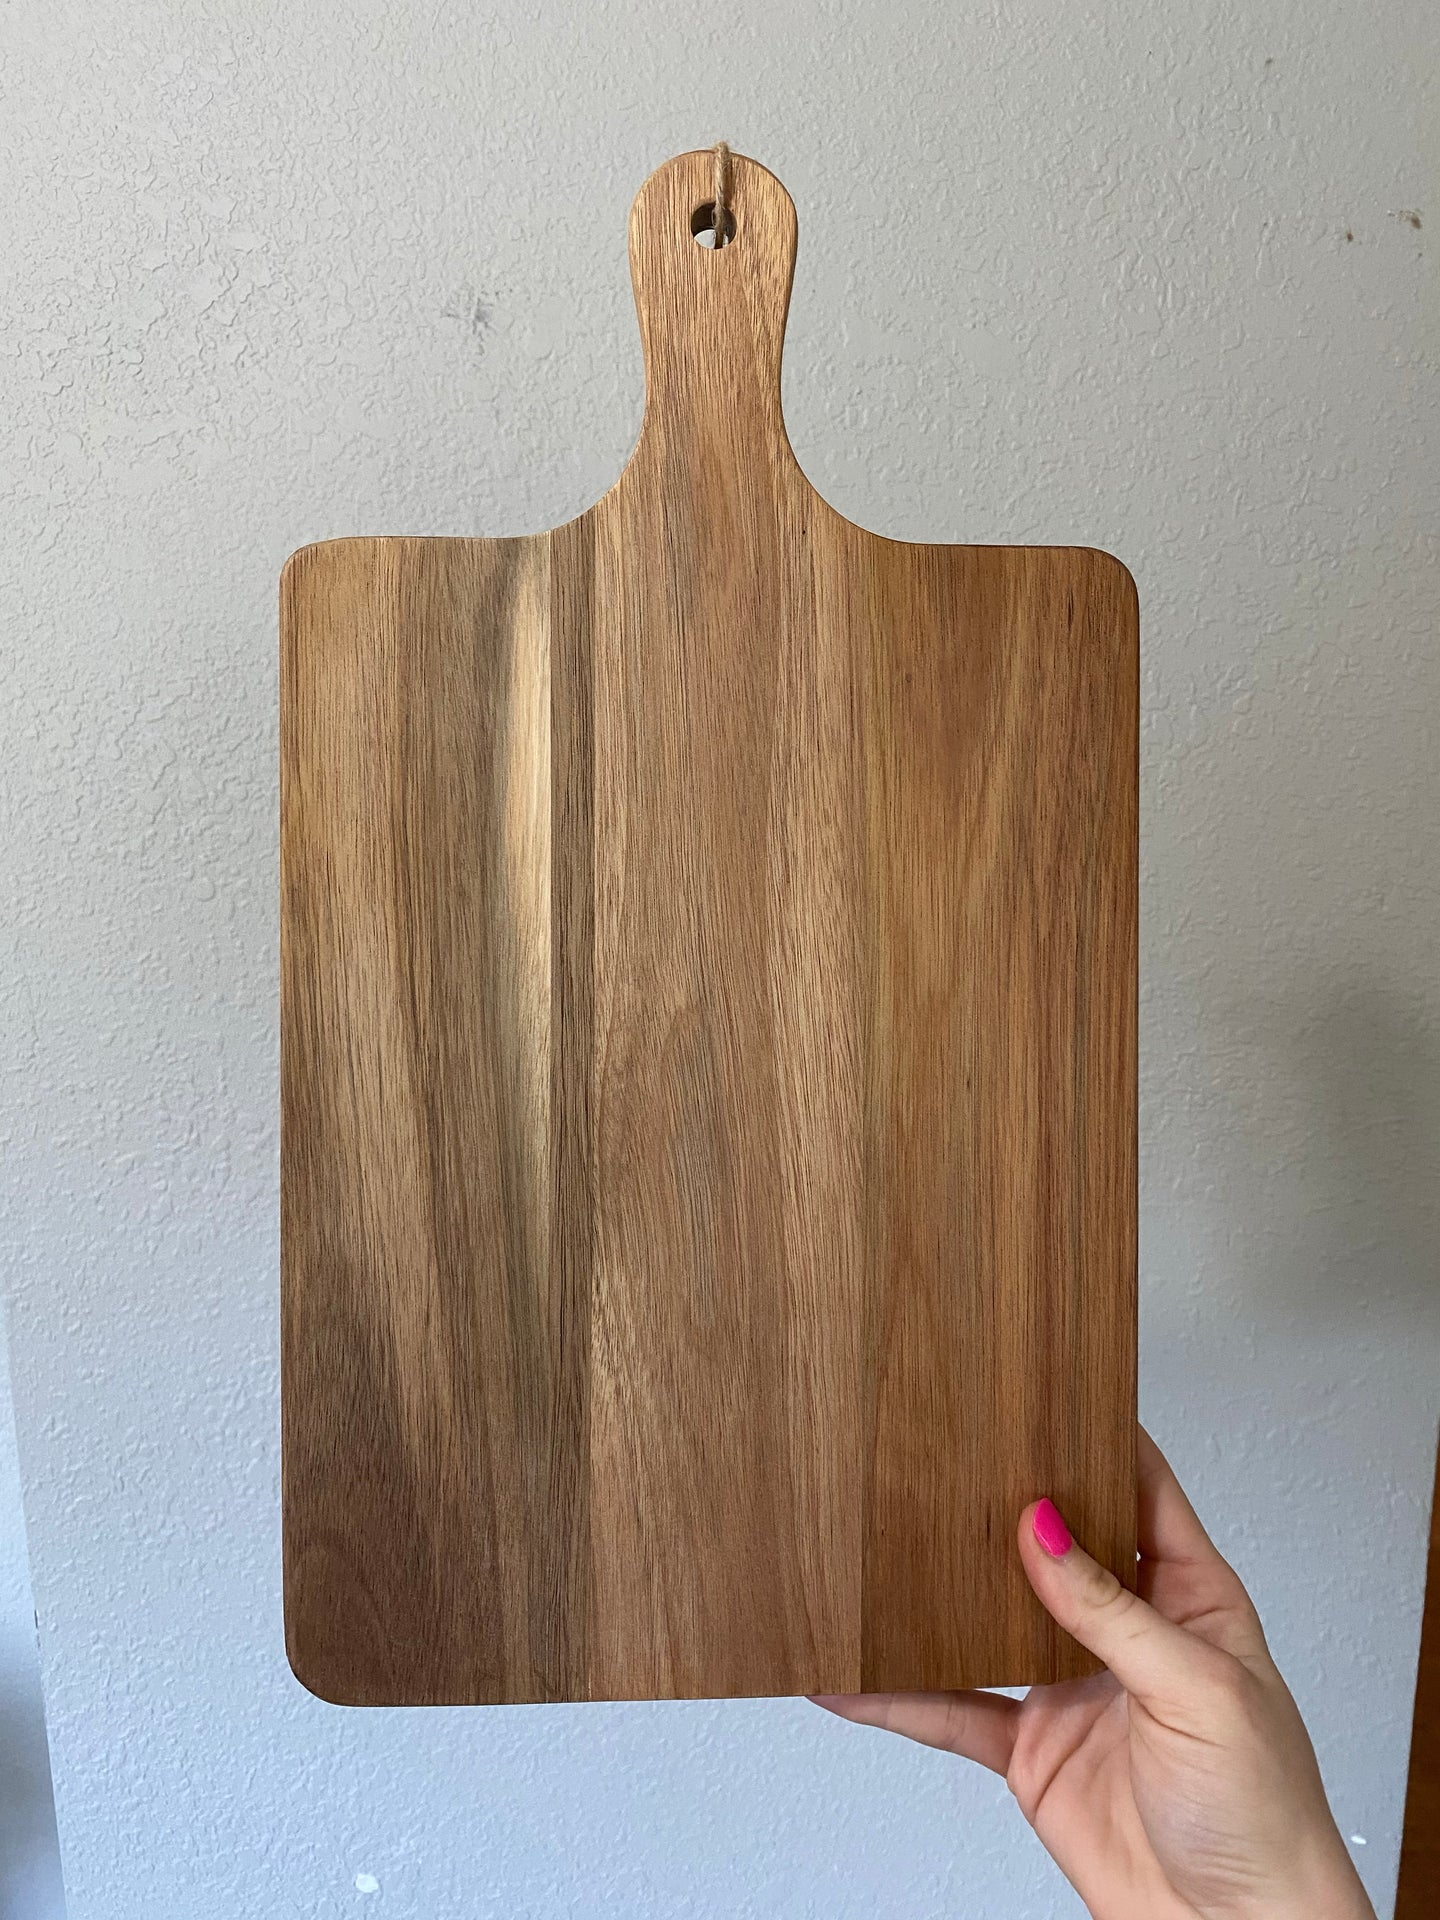 Engraved Handwriting Keepsake Cutting Board